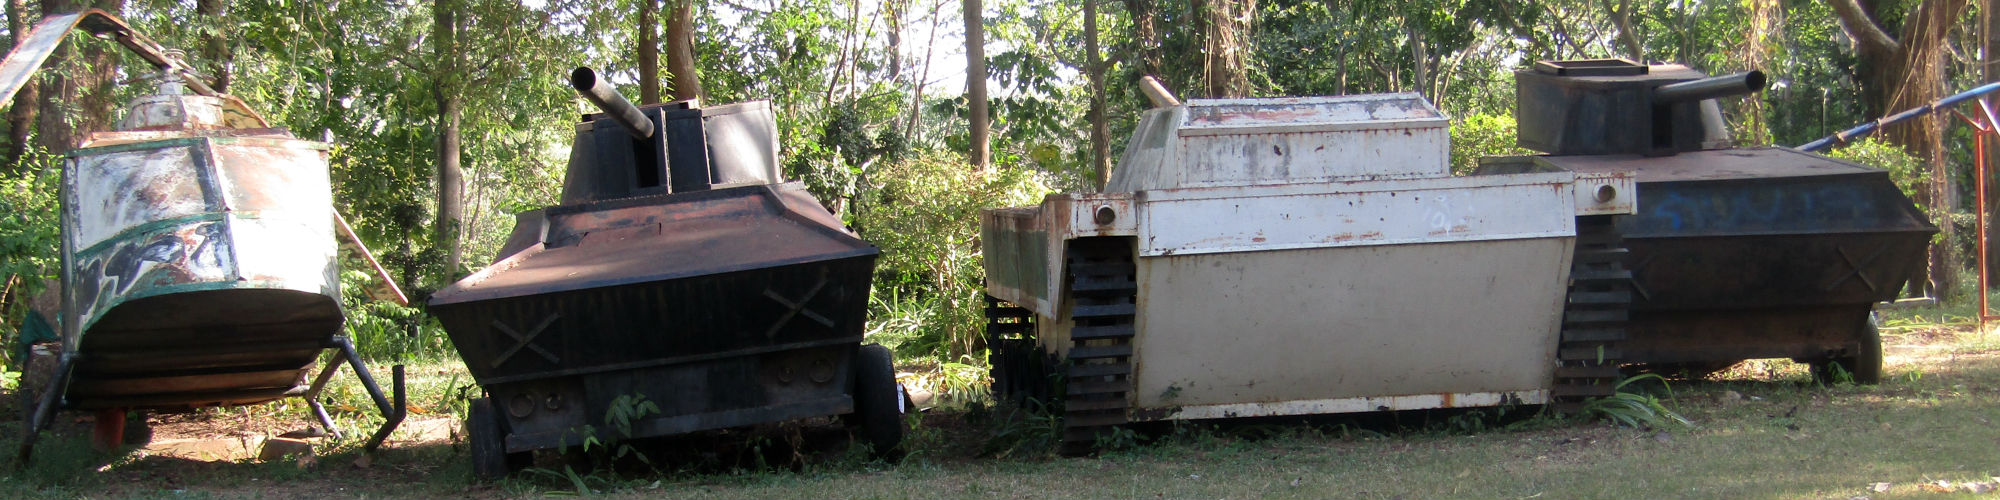 Relics of the communist uprising at the Rao Su Monument, Non Din Daeng District, Buriram Province